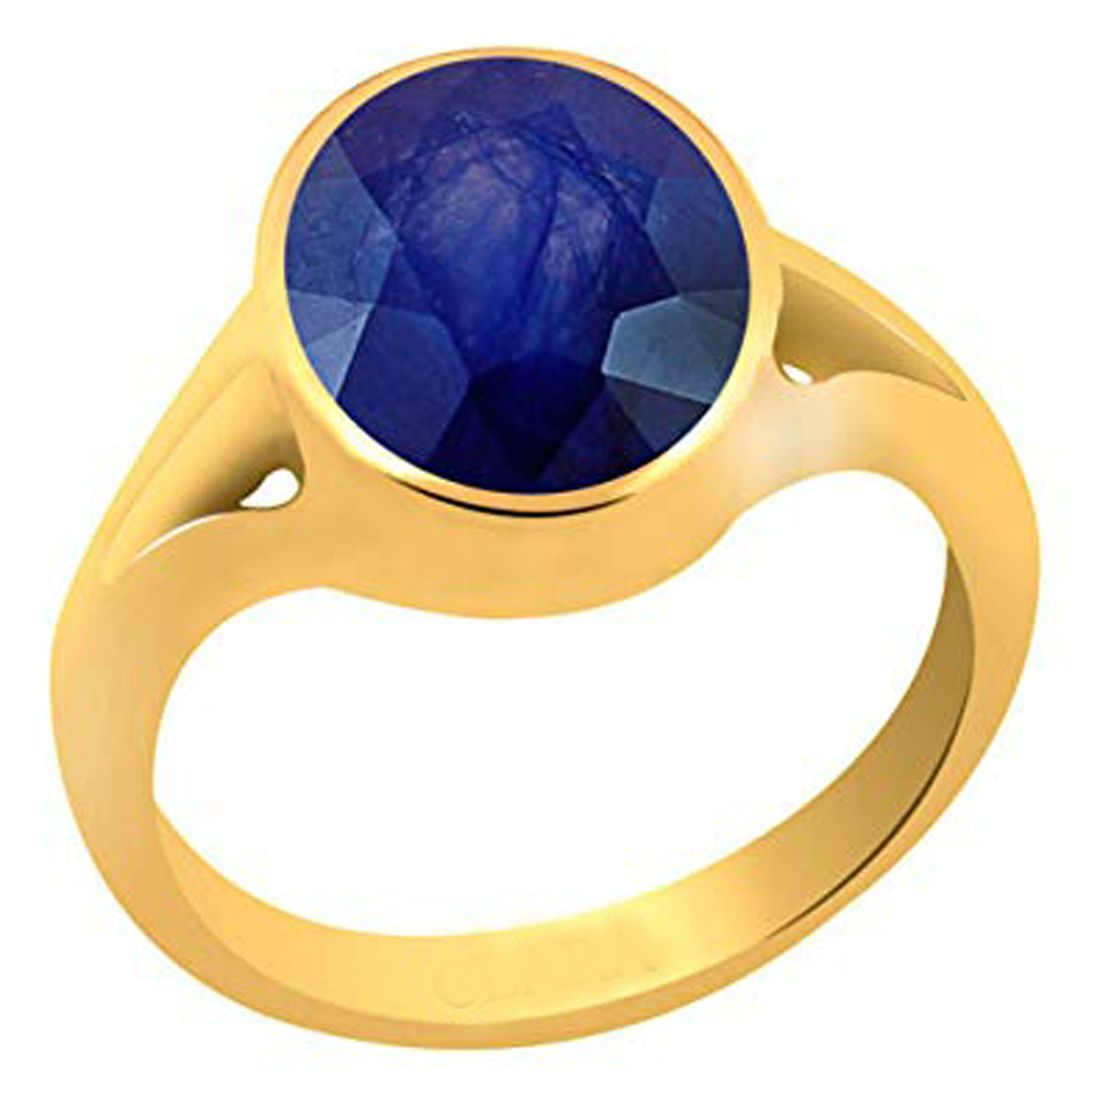 Gems Jewels Online Panch Dhatu Panch Dhatu Ring